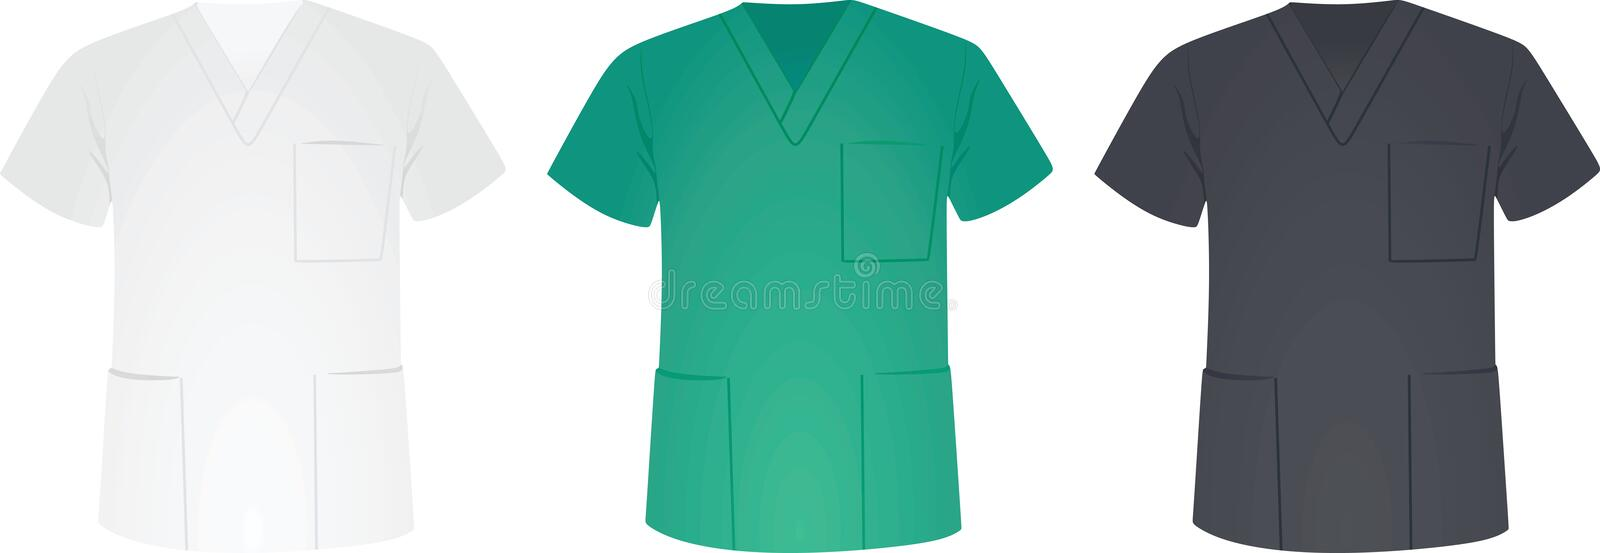 Medical uniforms in three colors vector illustration